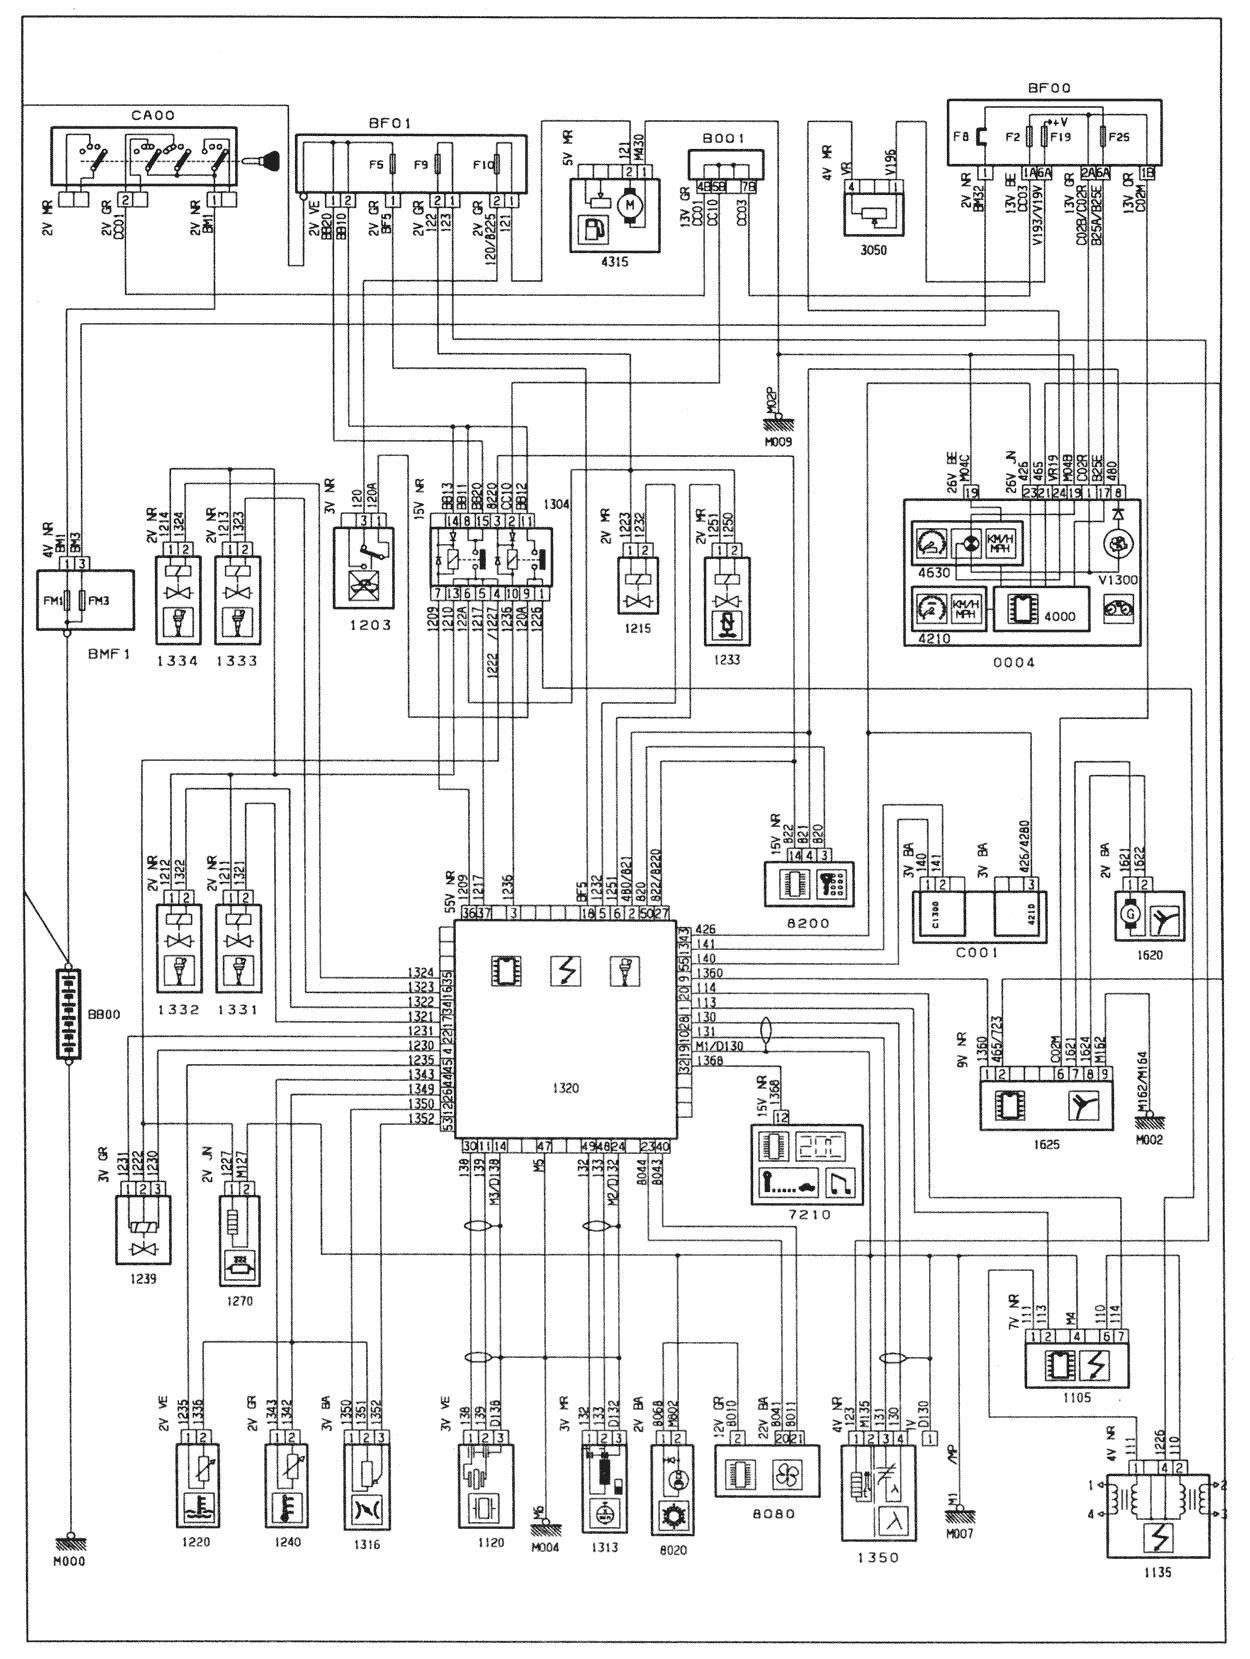 citroen vacuum diagram wiring diagram datasource peugeot 407 vacuum diagram peugeot vacuum diagram